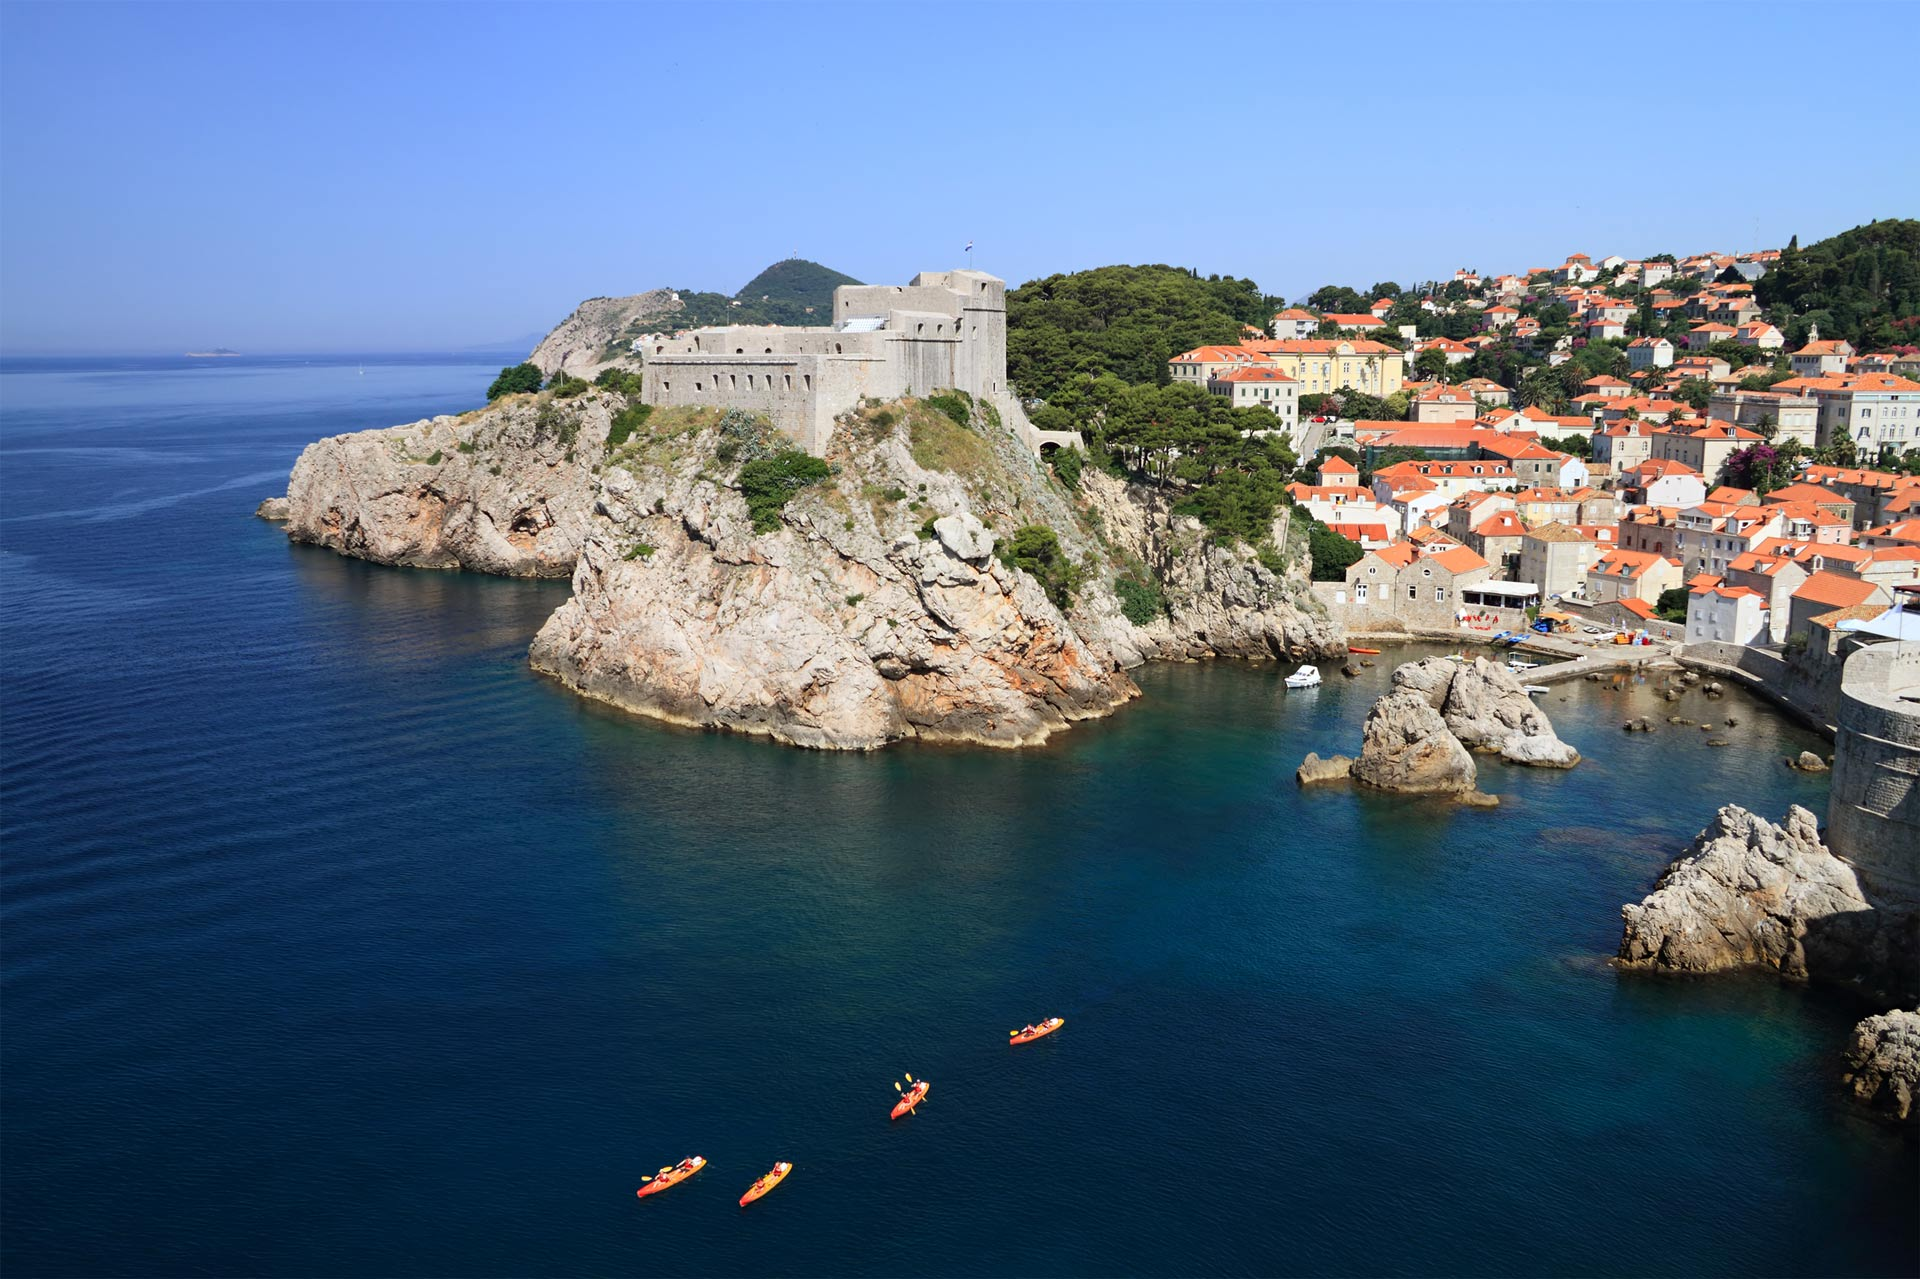 Dubrovnik is nicknamed Pearl of the Adriatic and is listed as a UNESCO World Heritage Site